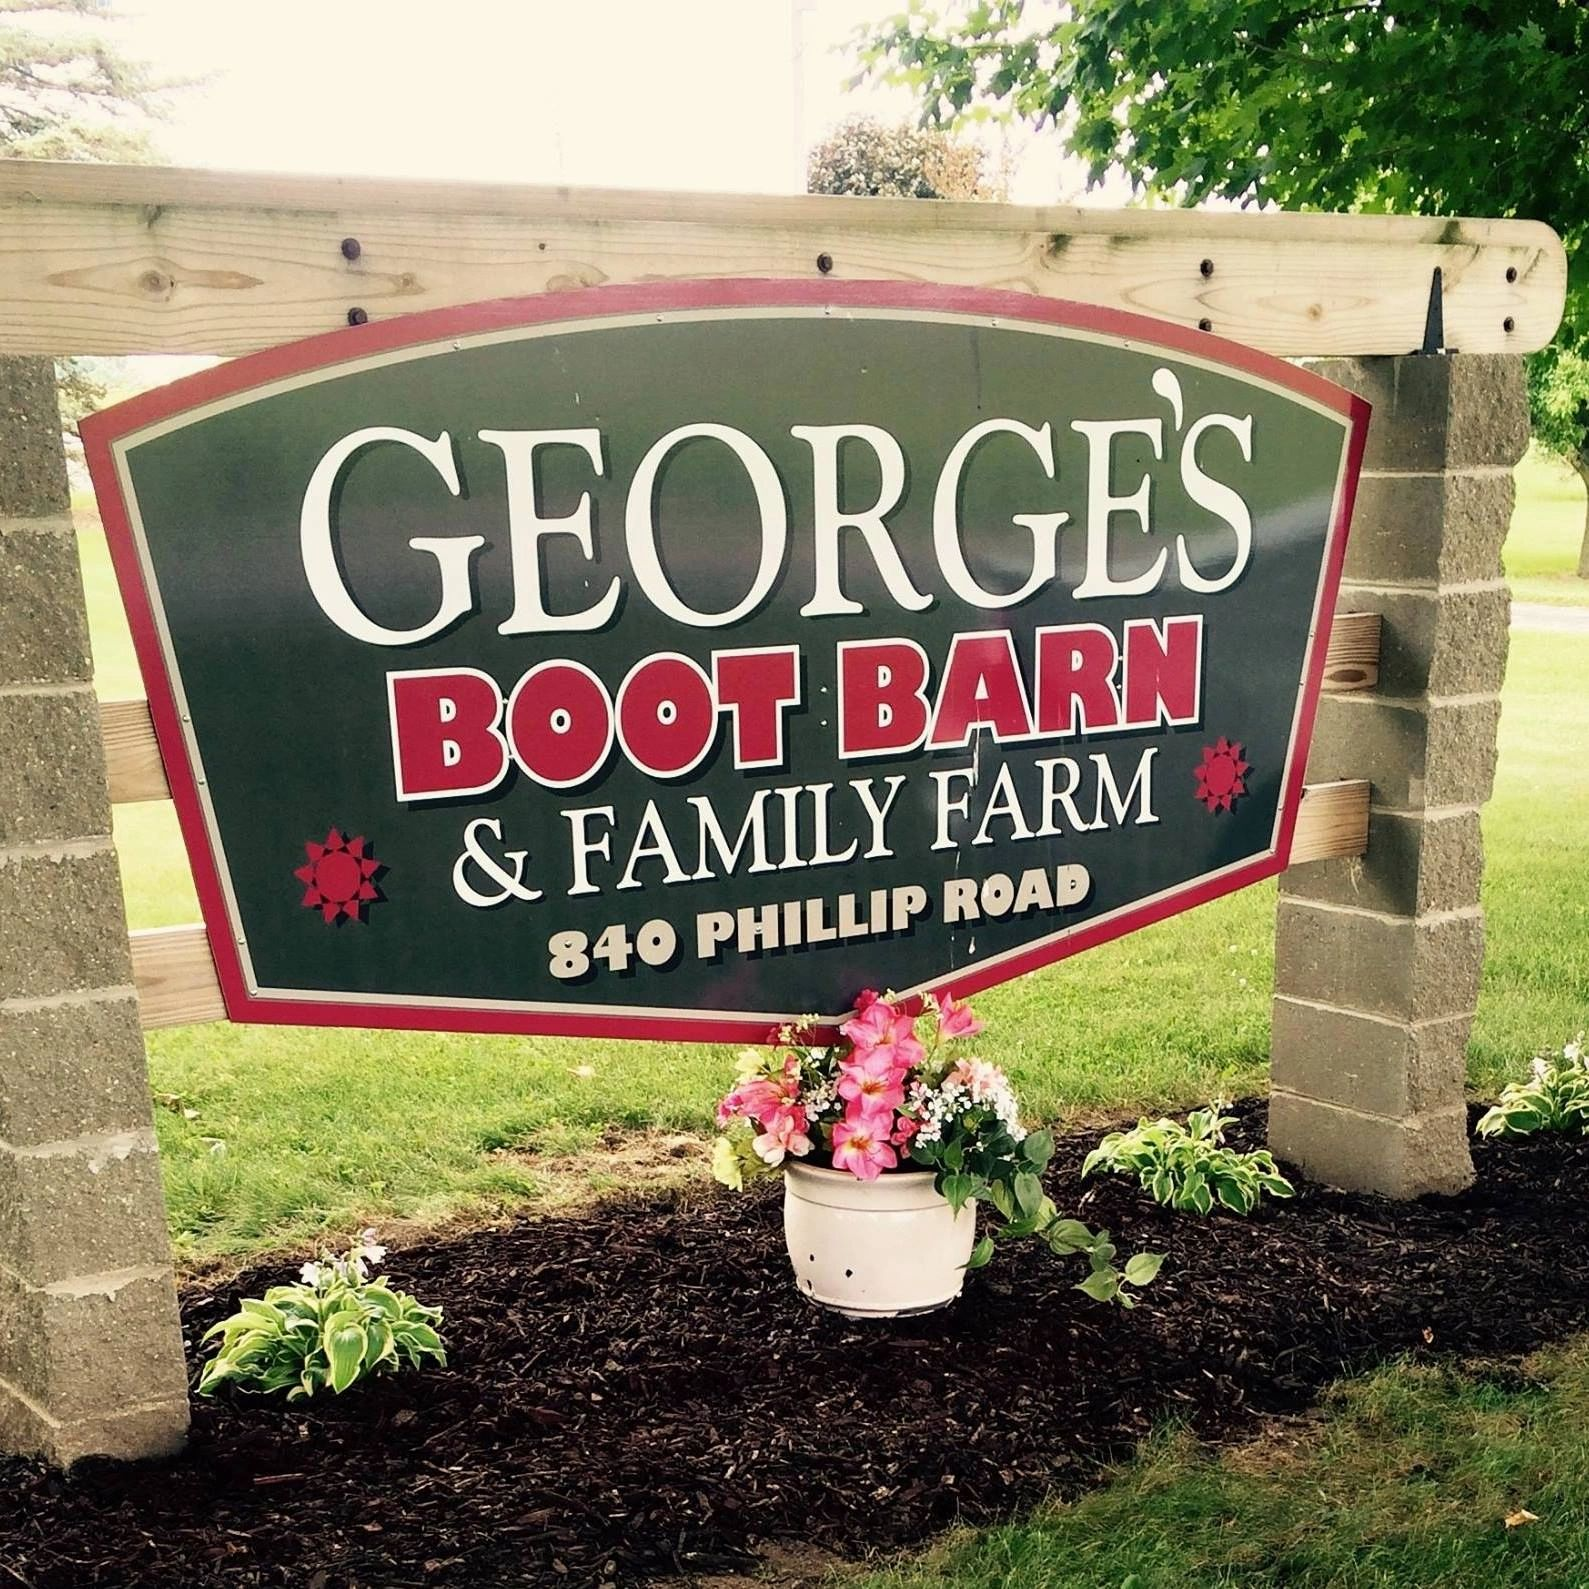 George's Boot Barn - Boots, Shoe Store